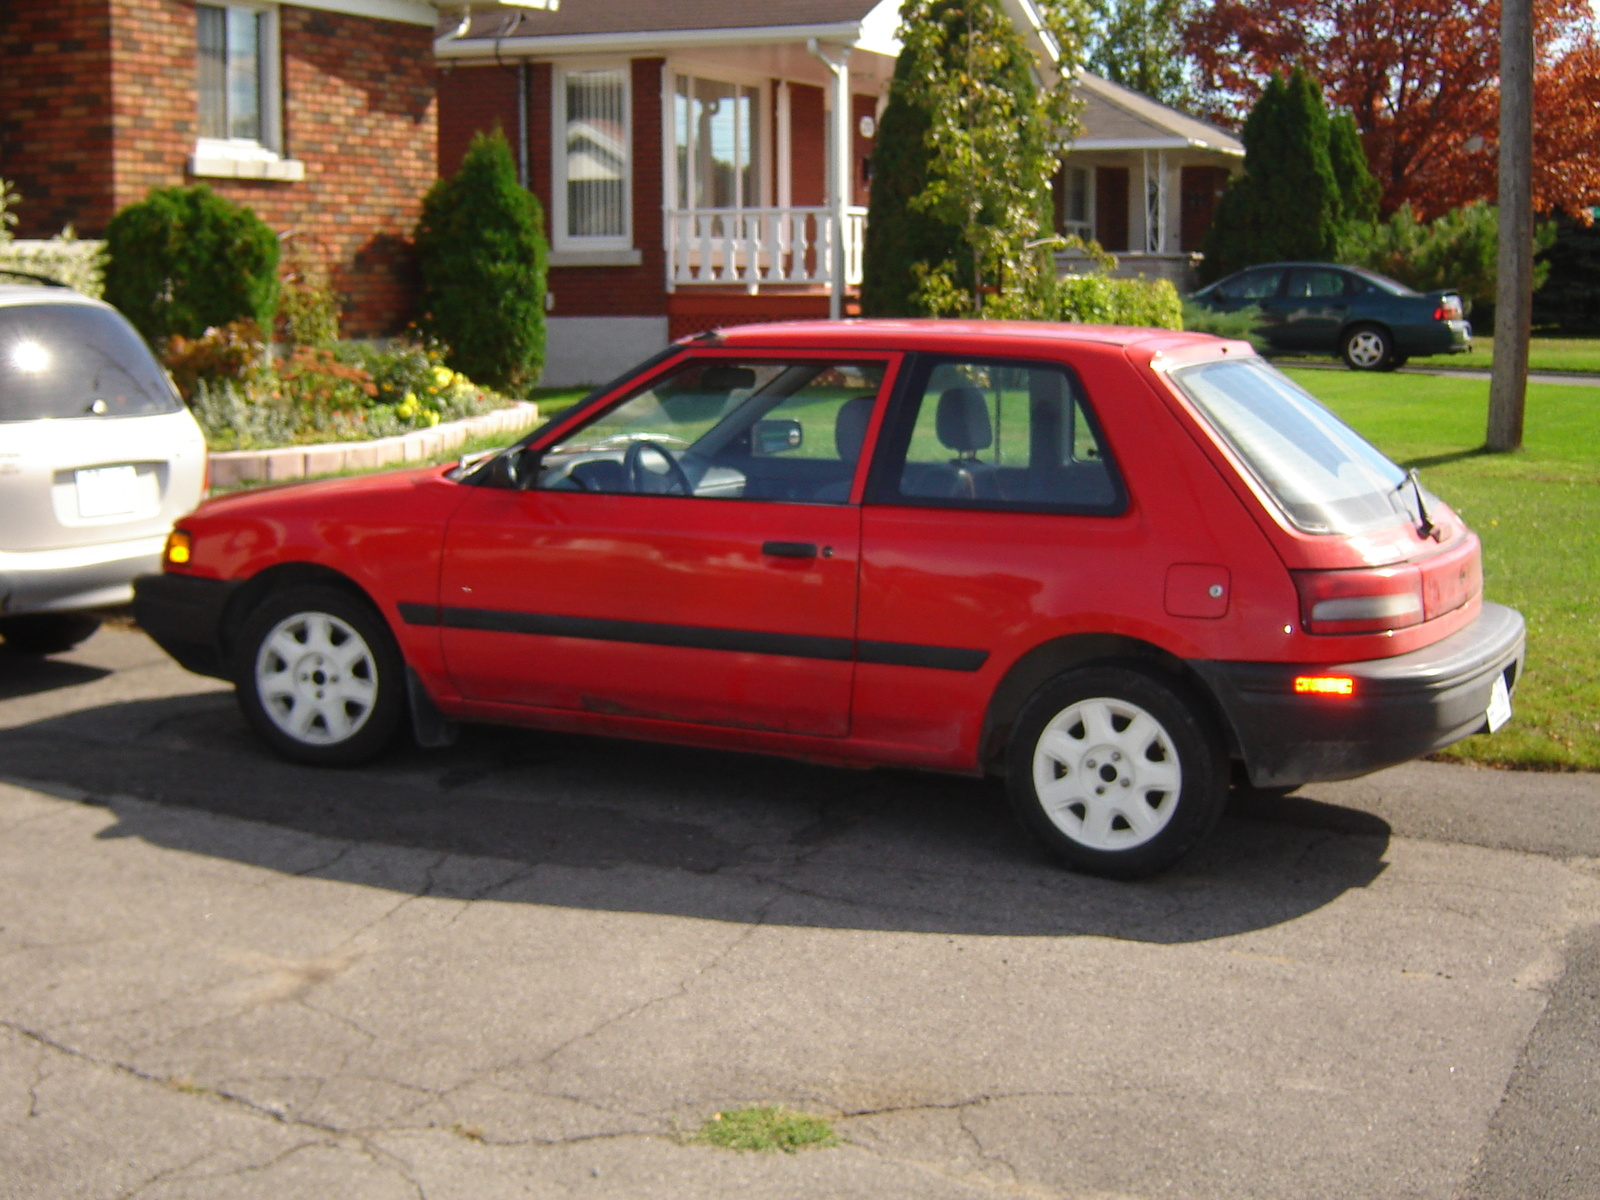 1994 Mazda 323 Hatchback 3-door